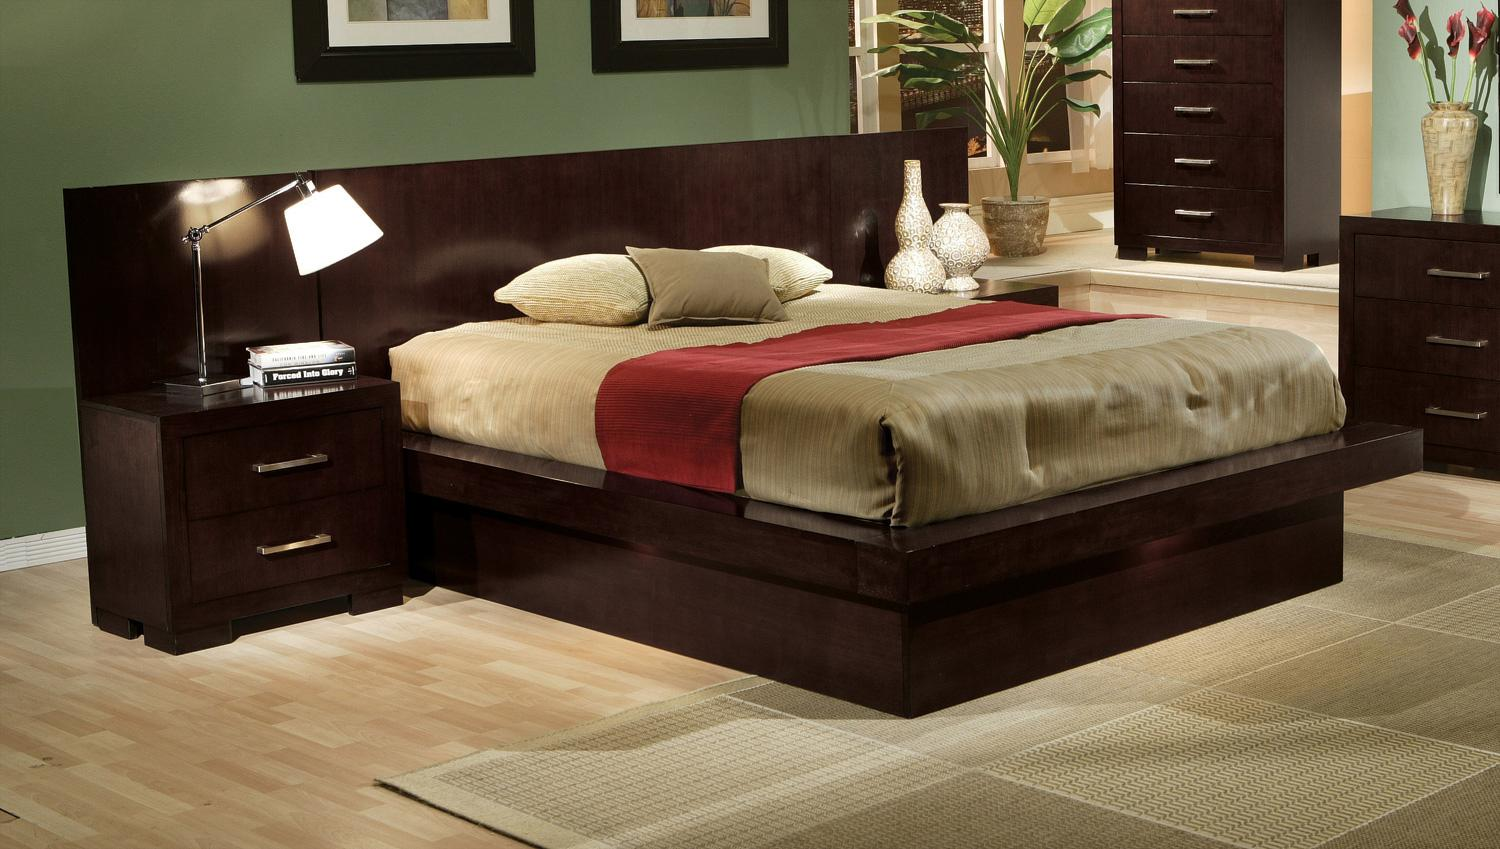 Modern platform bed queen bedroom arlington va furniture for Bedroom furniture retailers